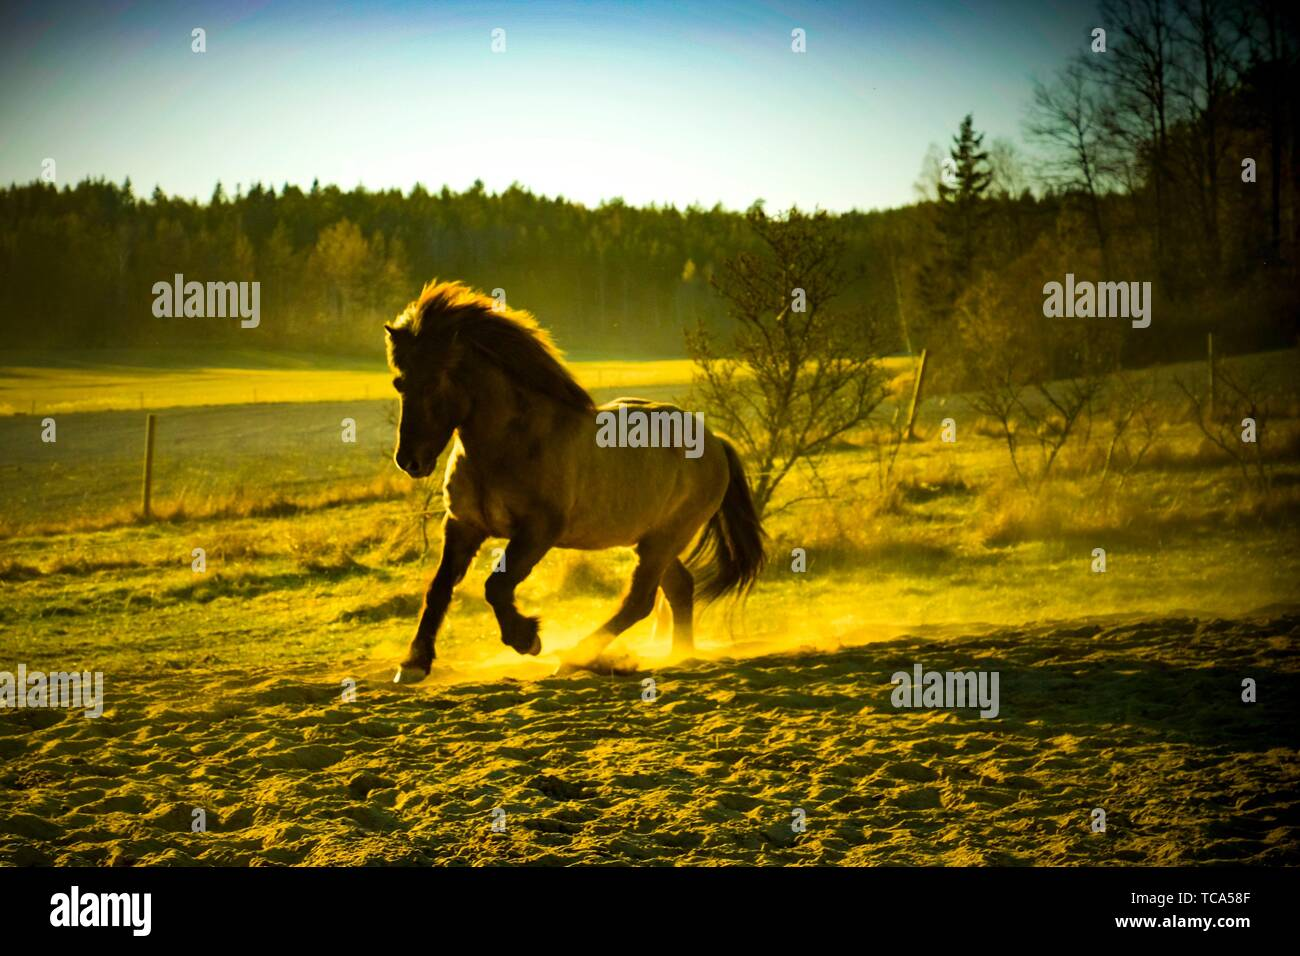 Galloping horse on the cuntryside of Sweden. - Stock Image